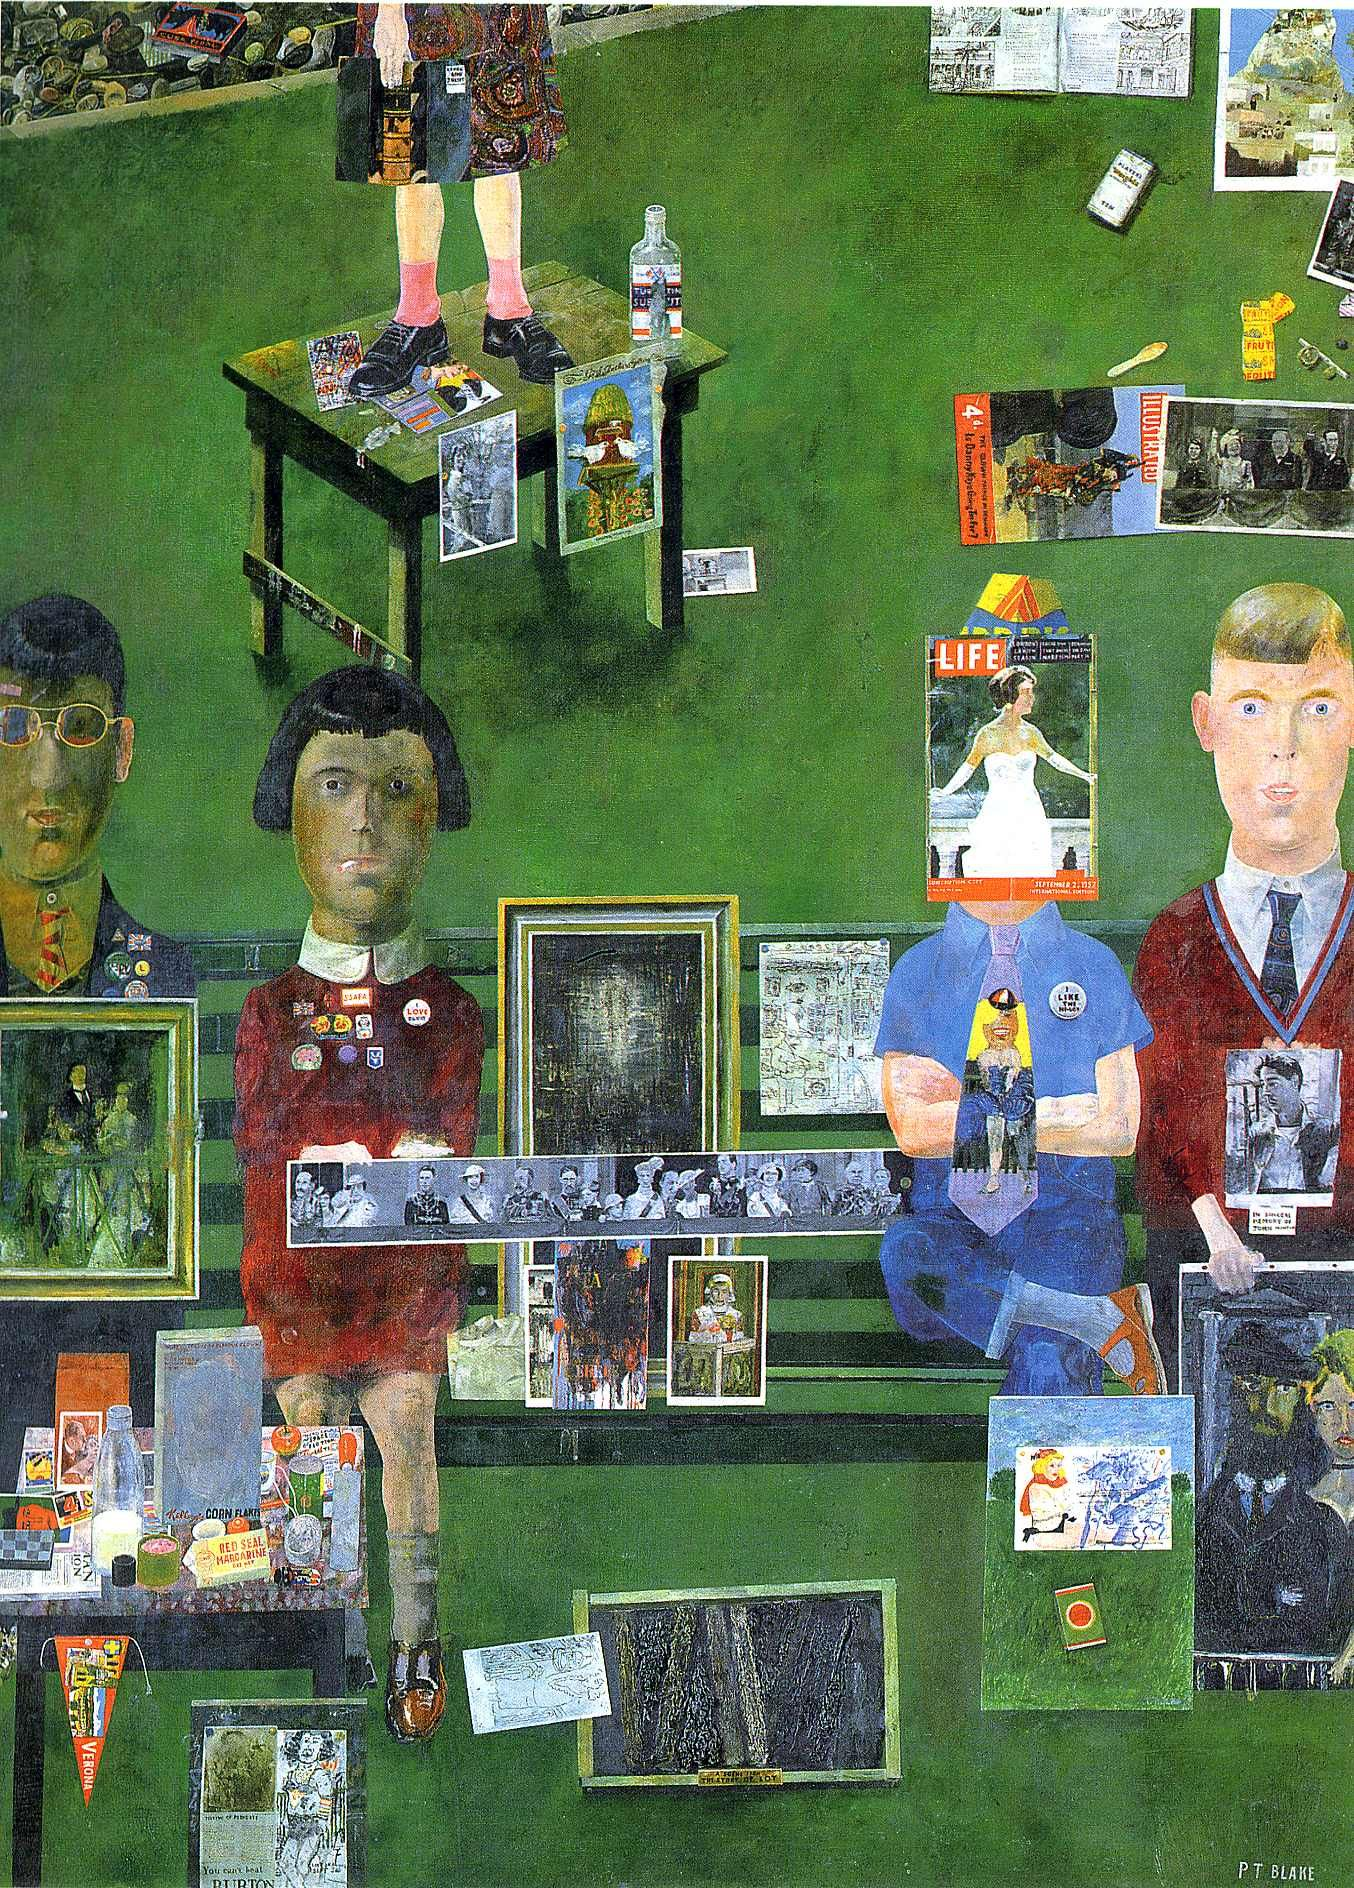 The Project Gallery presents prints by Peter Blake